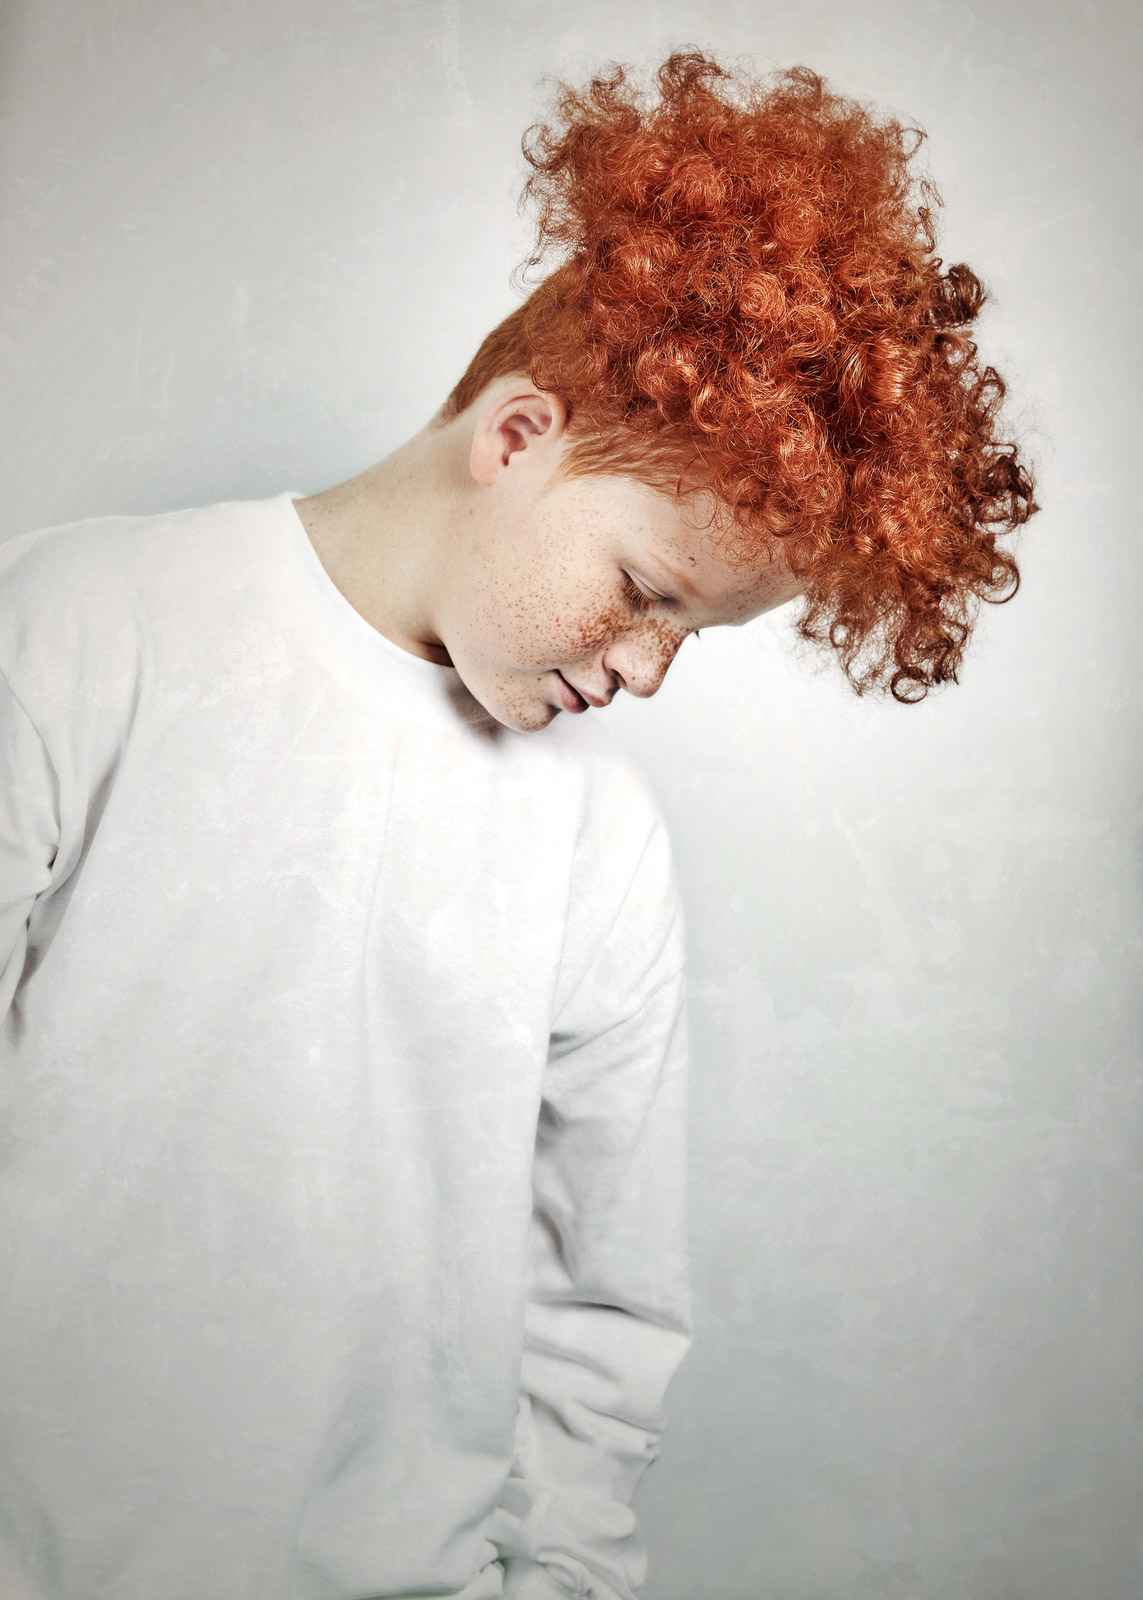 These striking portraits celebrate redheads young and old